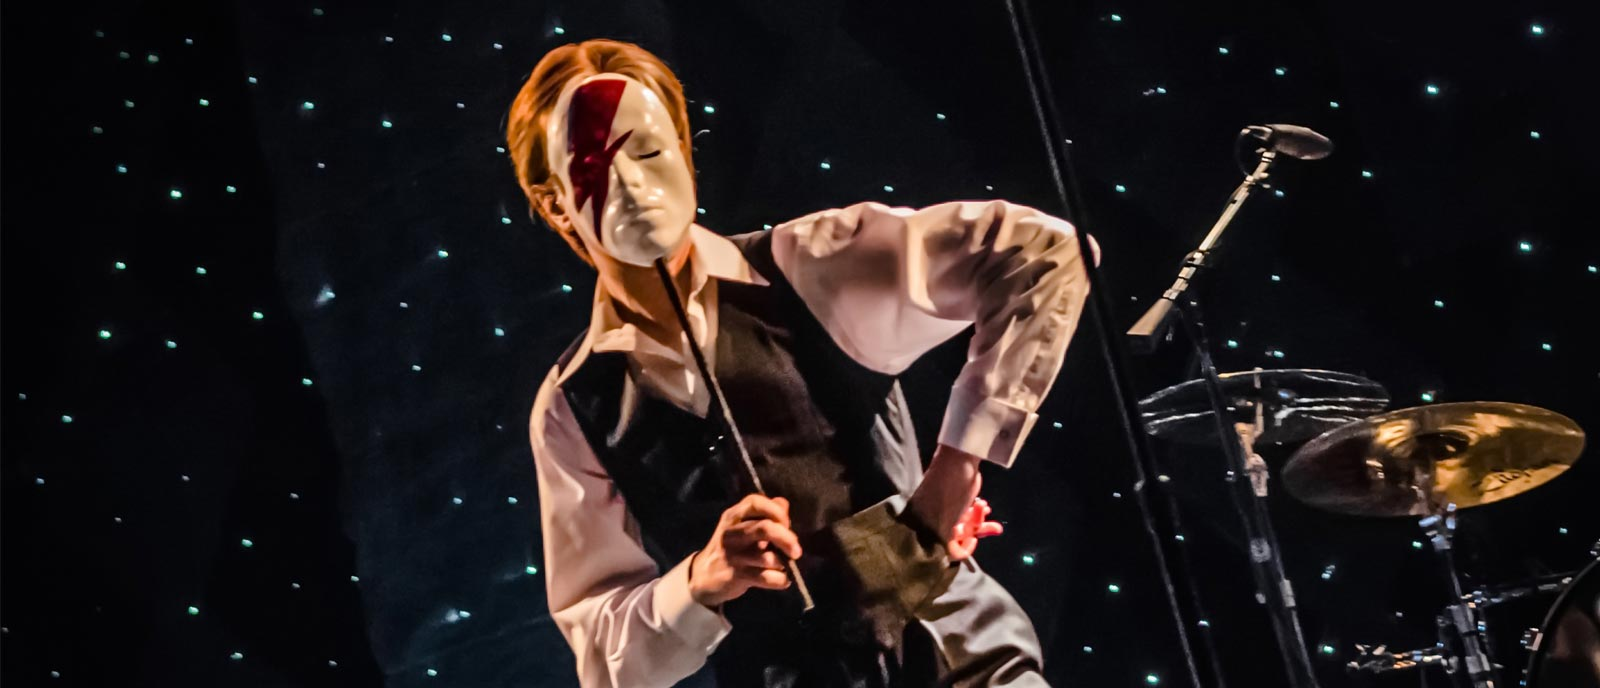 david brighton as david bowie mask